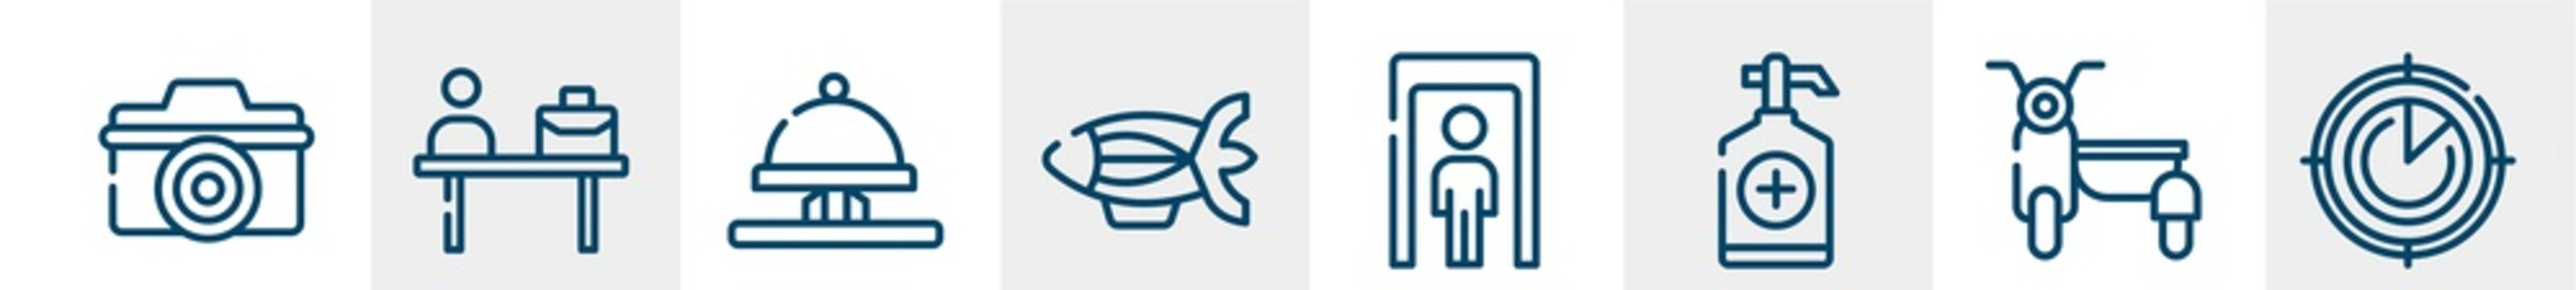 airport line icons such as digital camera, check in desk, hotel bell ringing, blimp, full body, airplanes on radar outline vector sign. symbol, logo illustration. linear style icons set. pixel